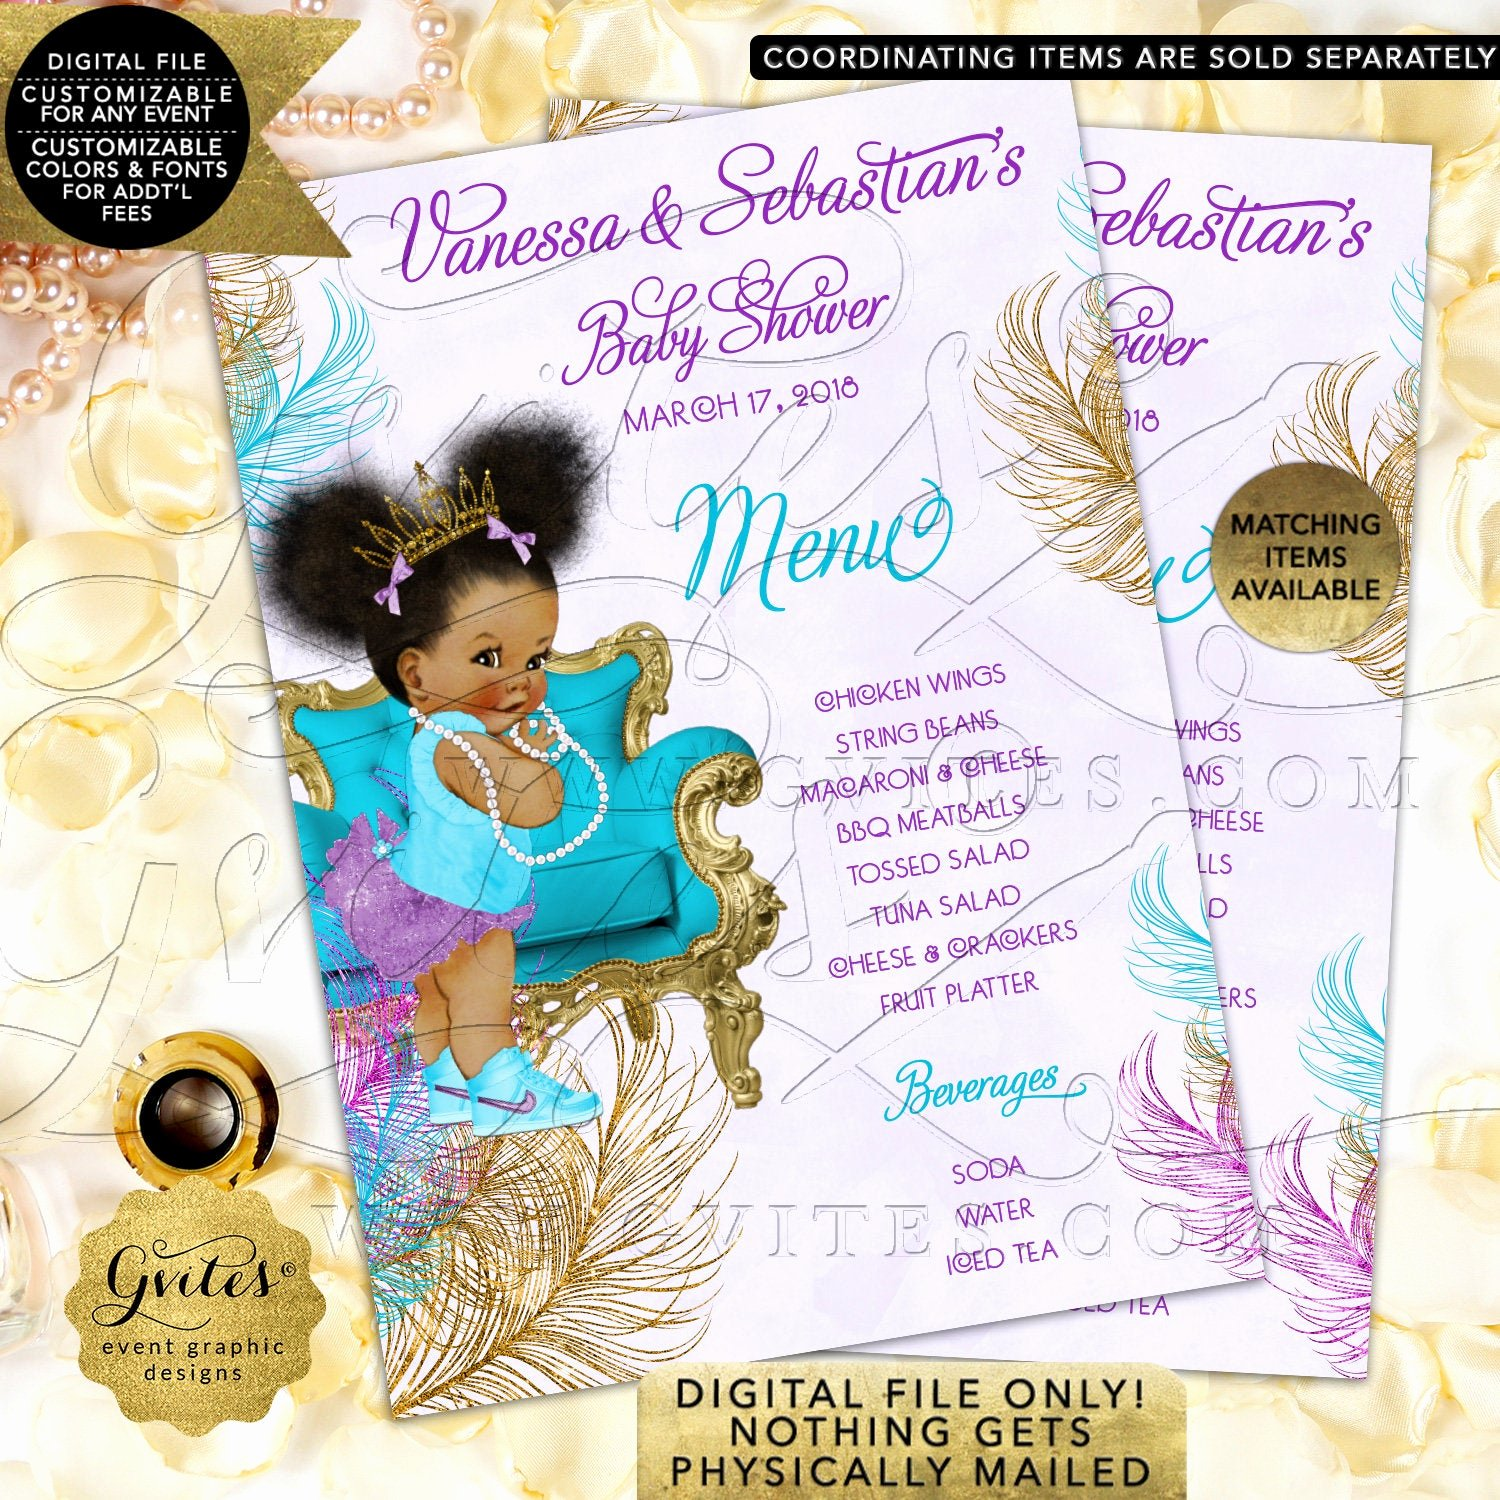 Baby Shower Menu Cards Awesome Baby Shower Menu Cards Turquoise Purple Lavender Gold African American Girl Vintage Diamonds